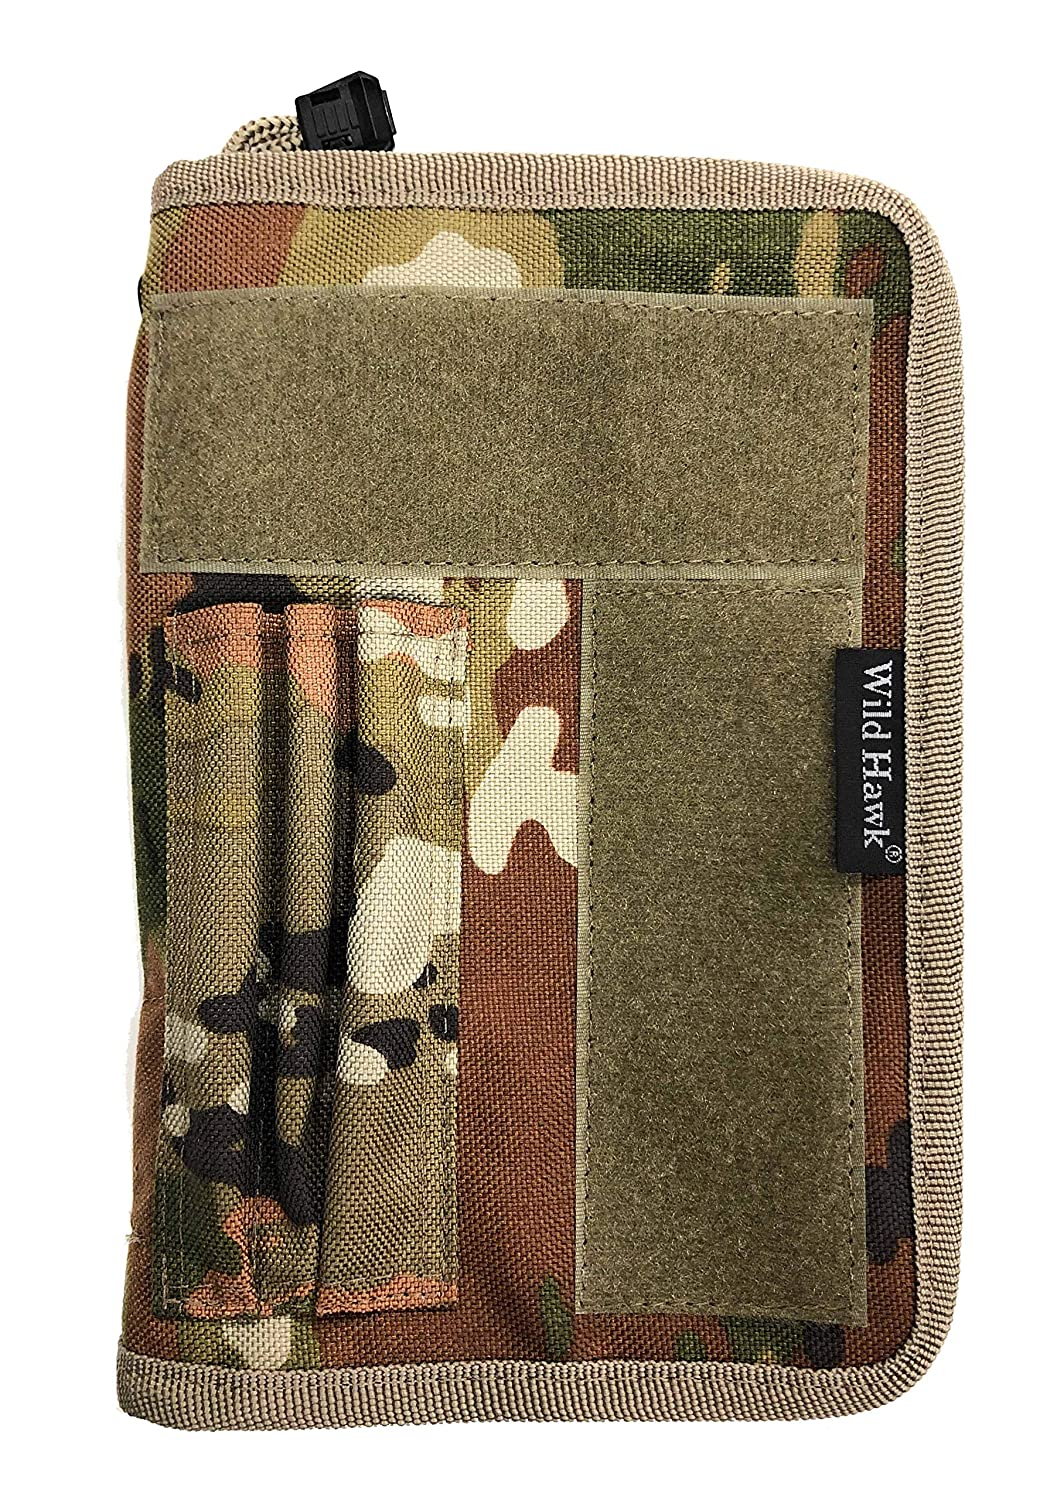 Green Military Issue Hardcover Field Notebook aka. Leaders Book Zipper Cover Black